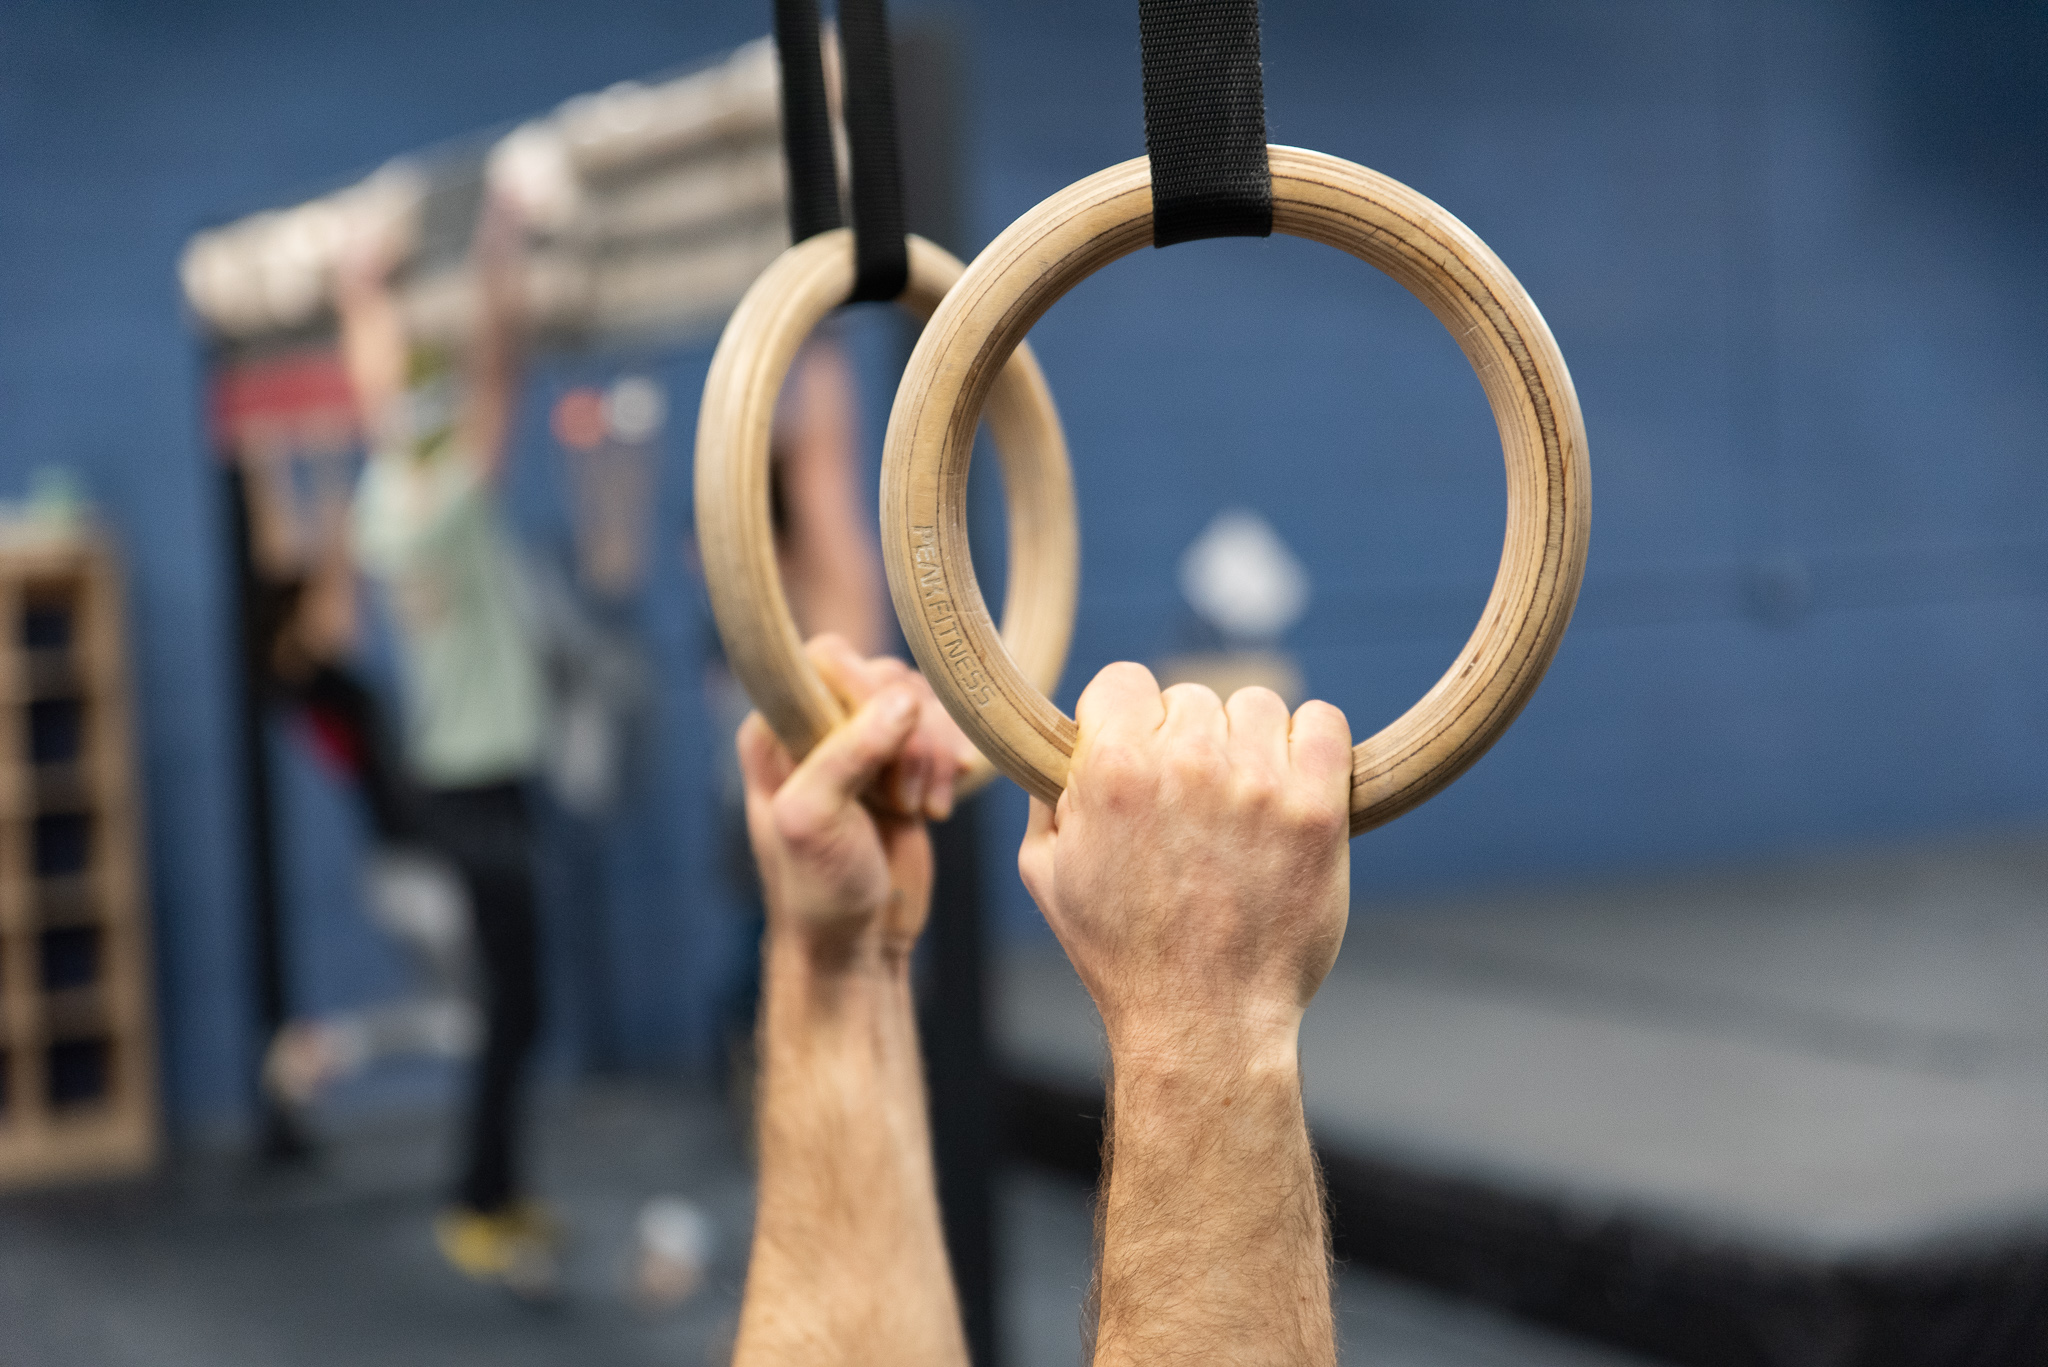 Hands holding the rings in the fitness room